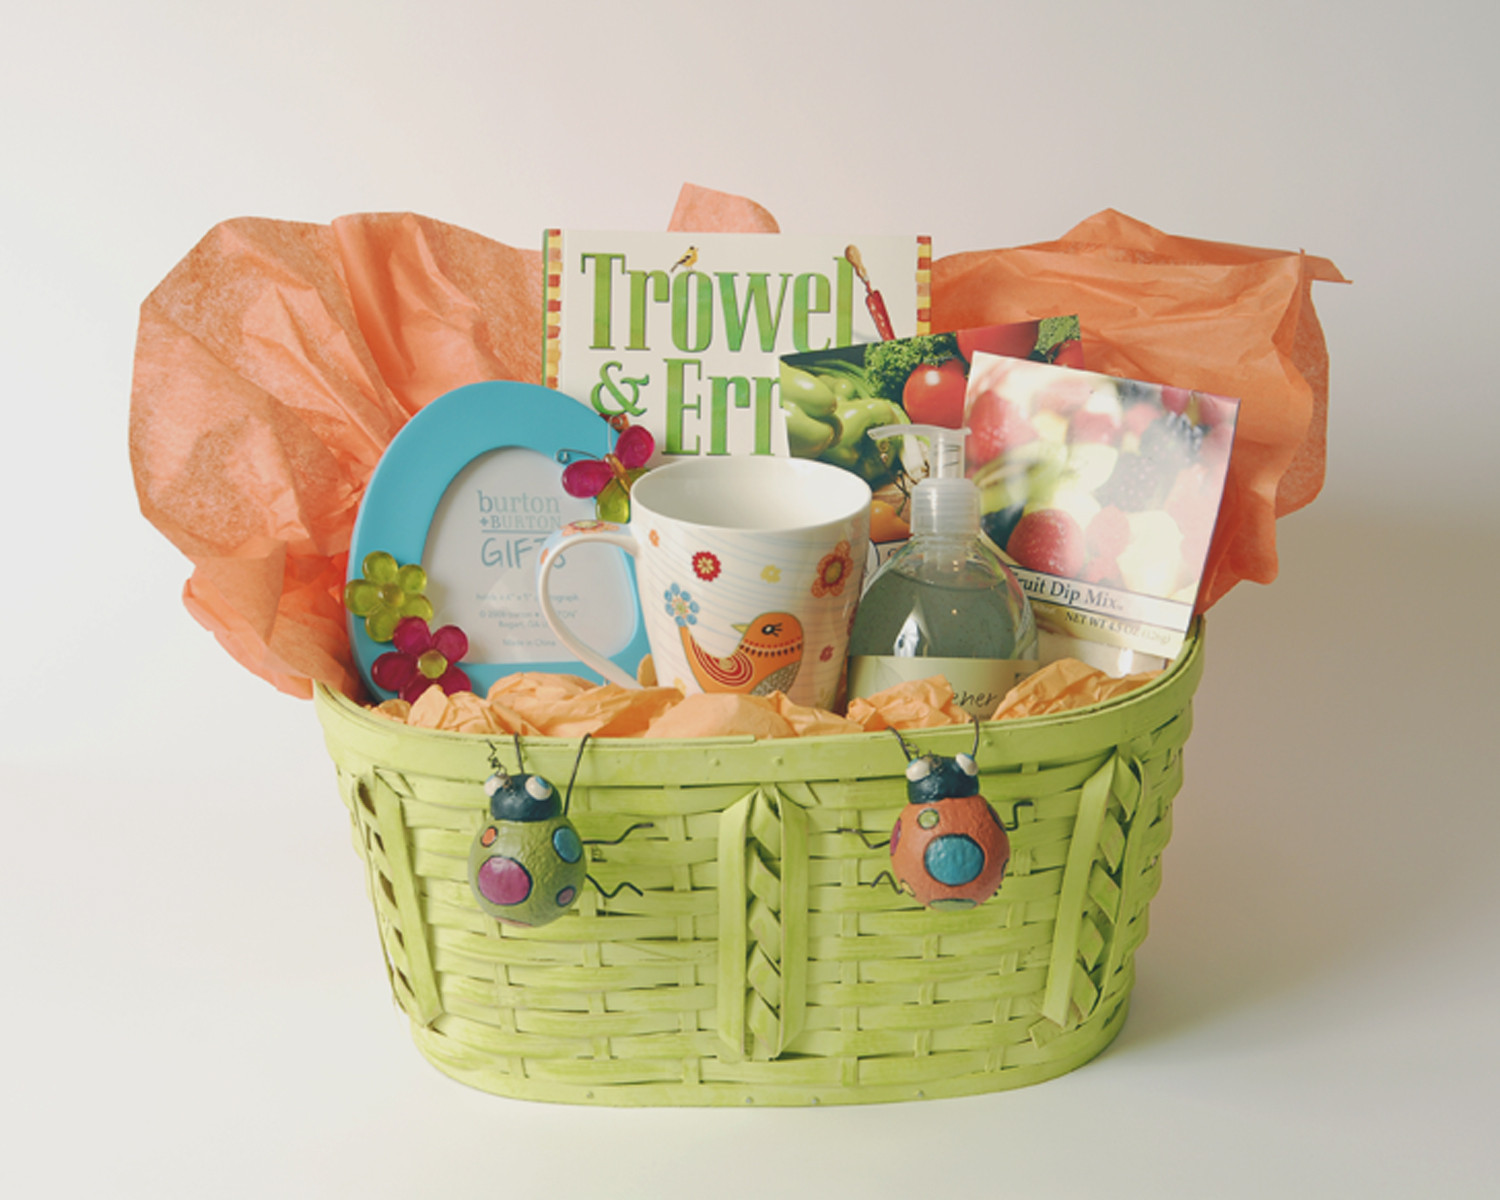 Outdoor Gift Basket Ideas  Thoughtful Presence 5 Great Gift Basket Ideas For Women